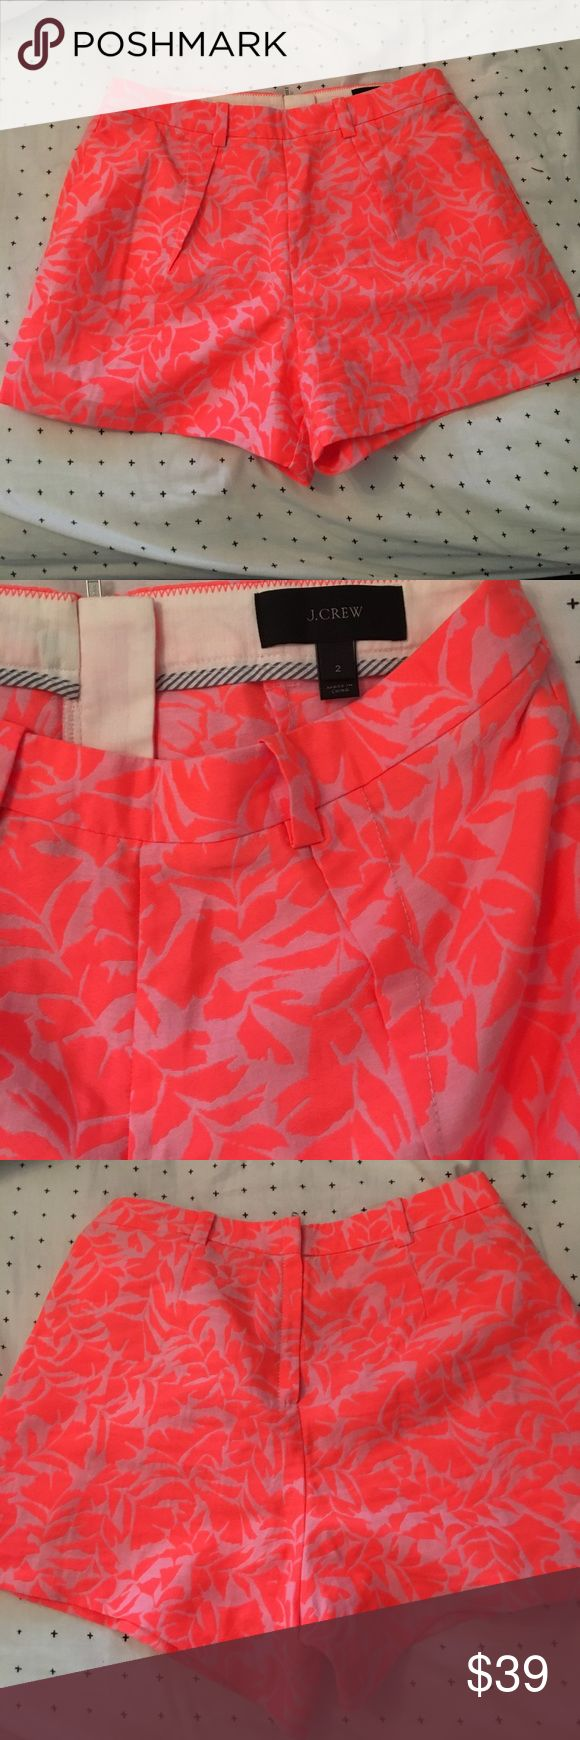 Jcrew High waisted Neon Shorts Worn once J. crew high waisted neon pink shorts with palm leaf pattern. Size 2. Perfect condition J. Crew Shorts